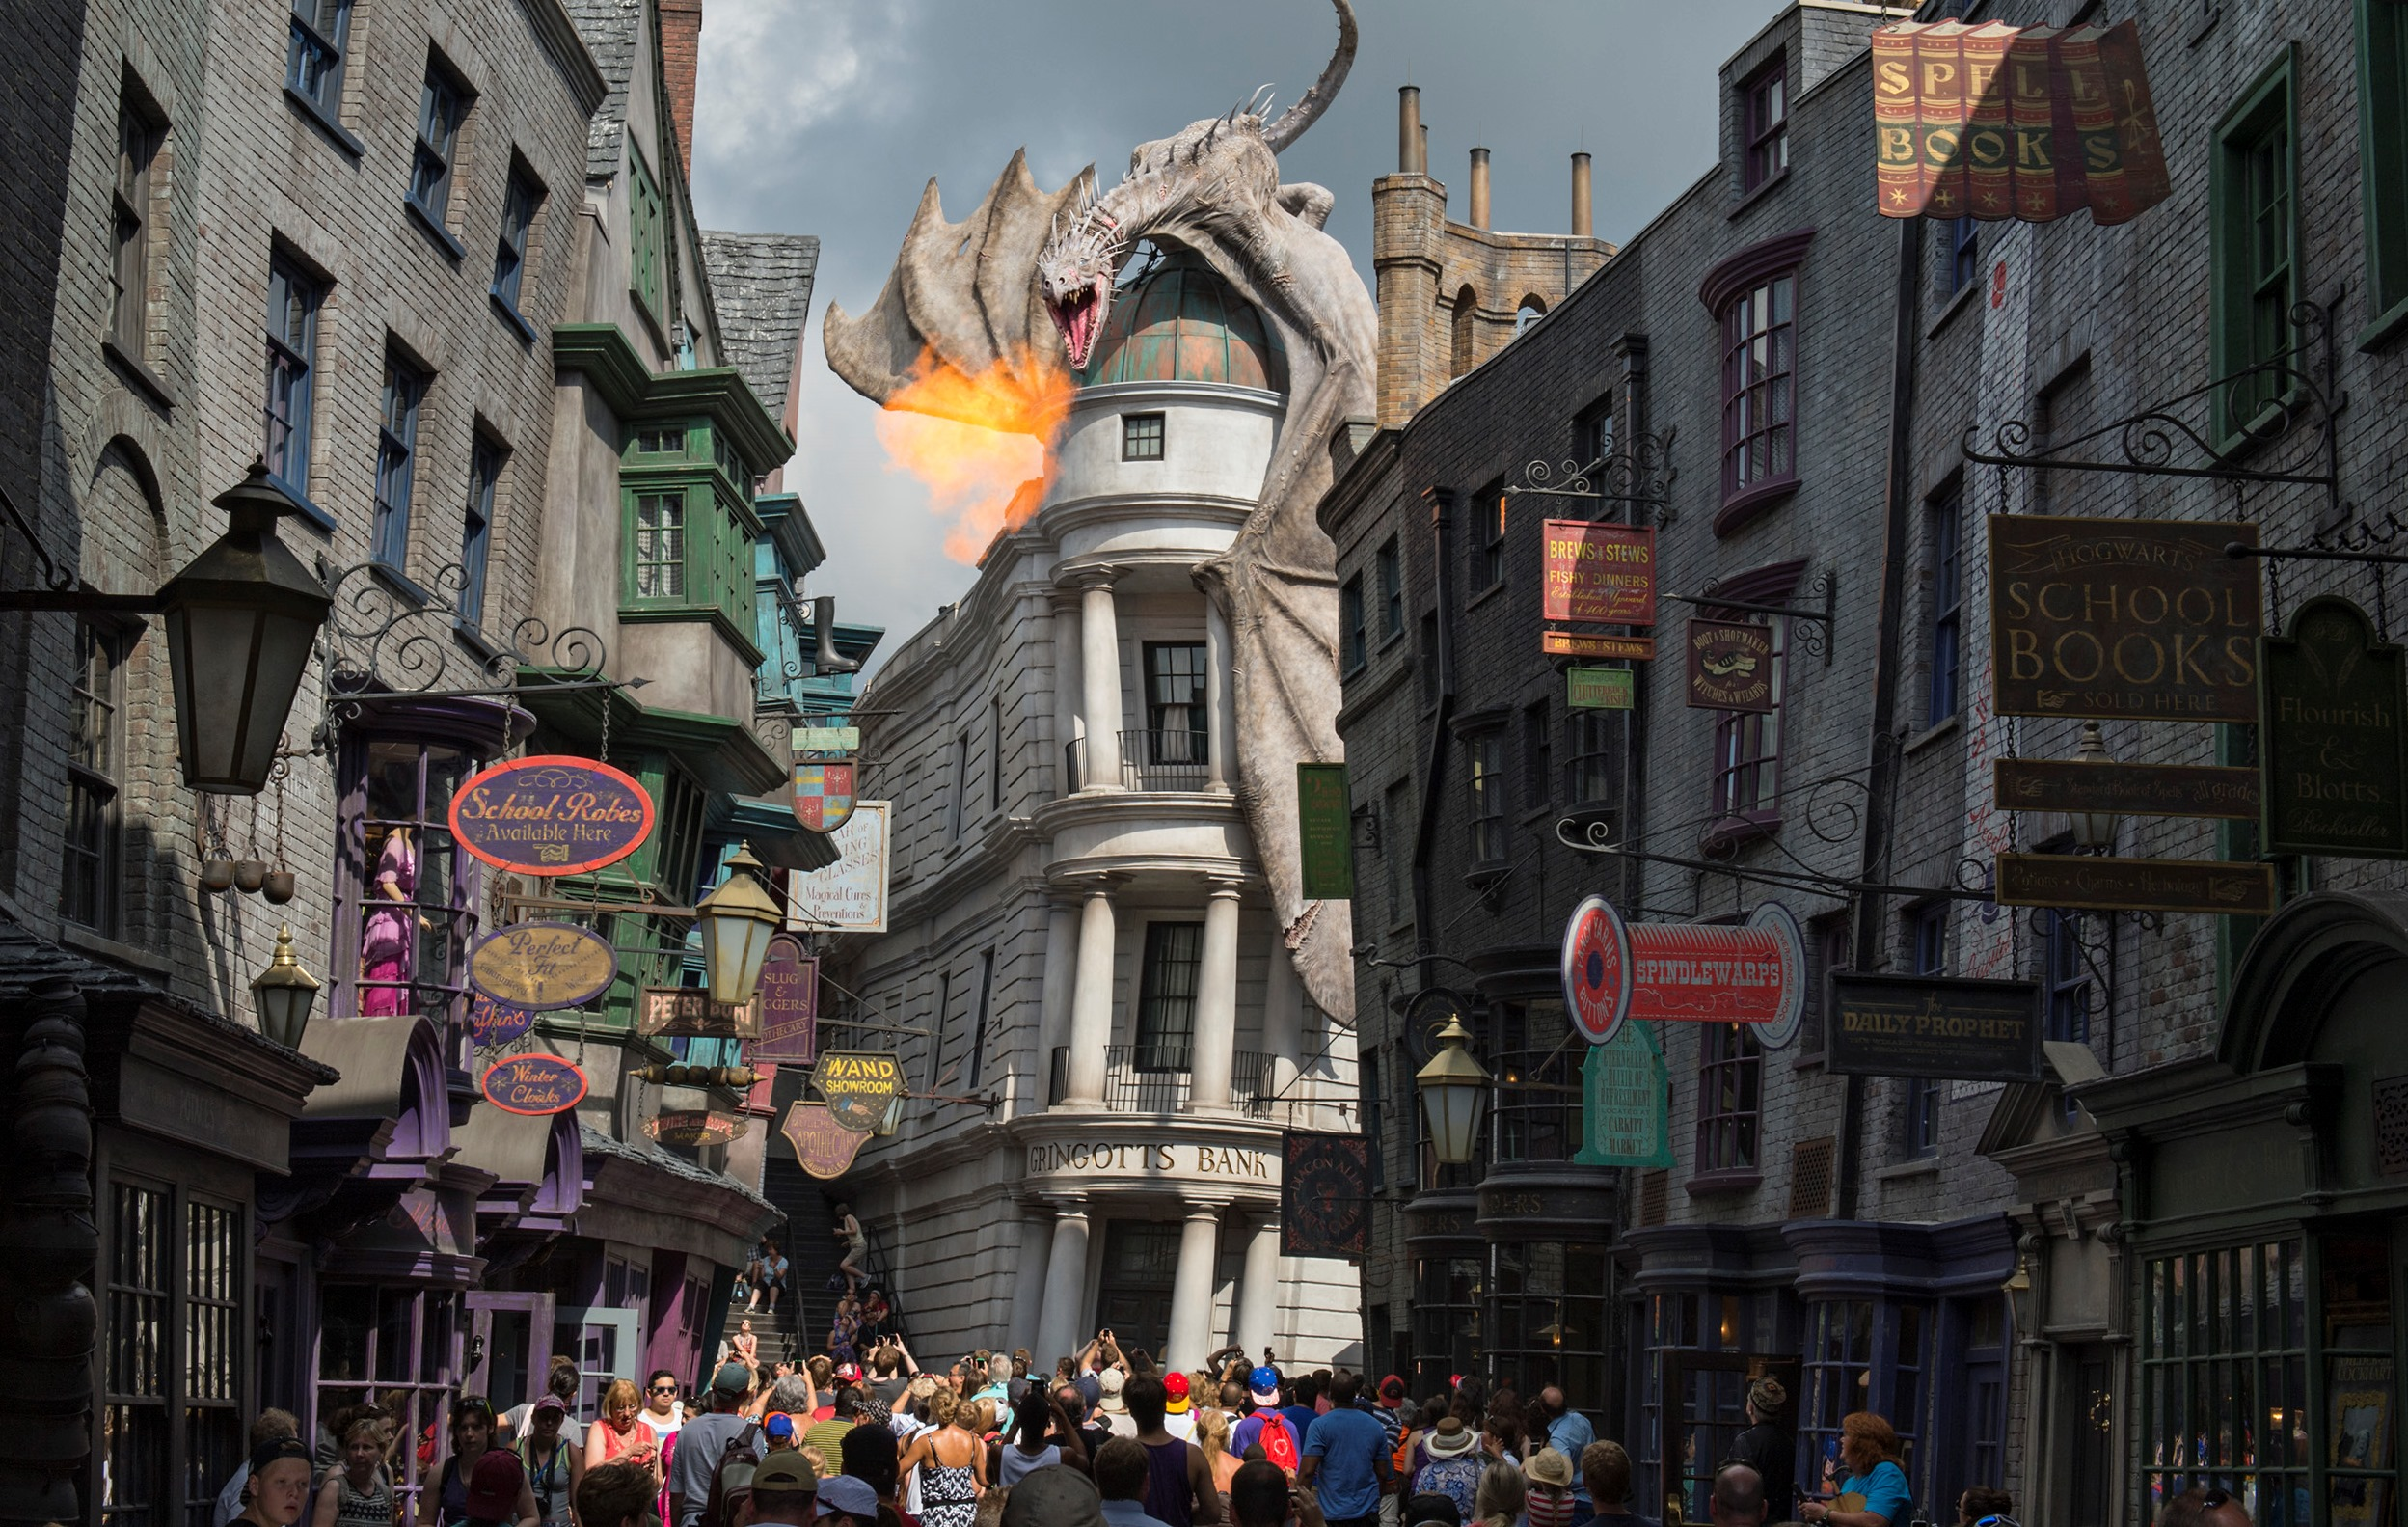 One day itinerary for visiting harry potter at universal for A new image salon orlando